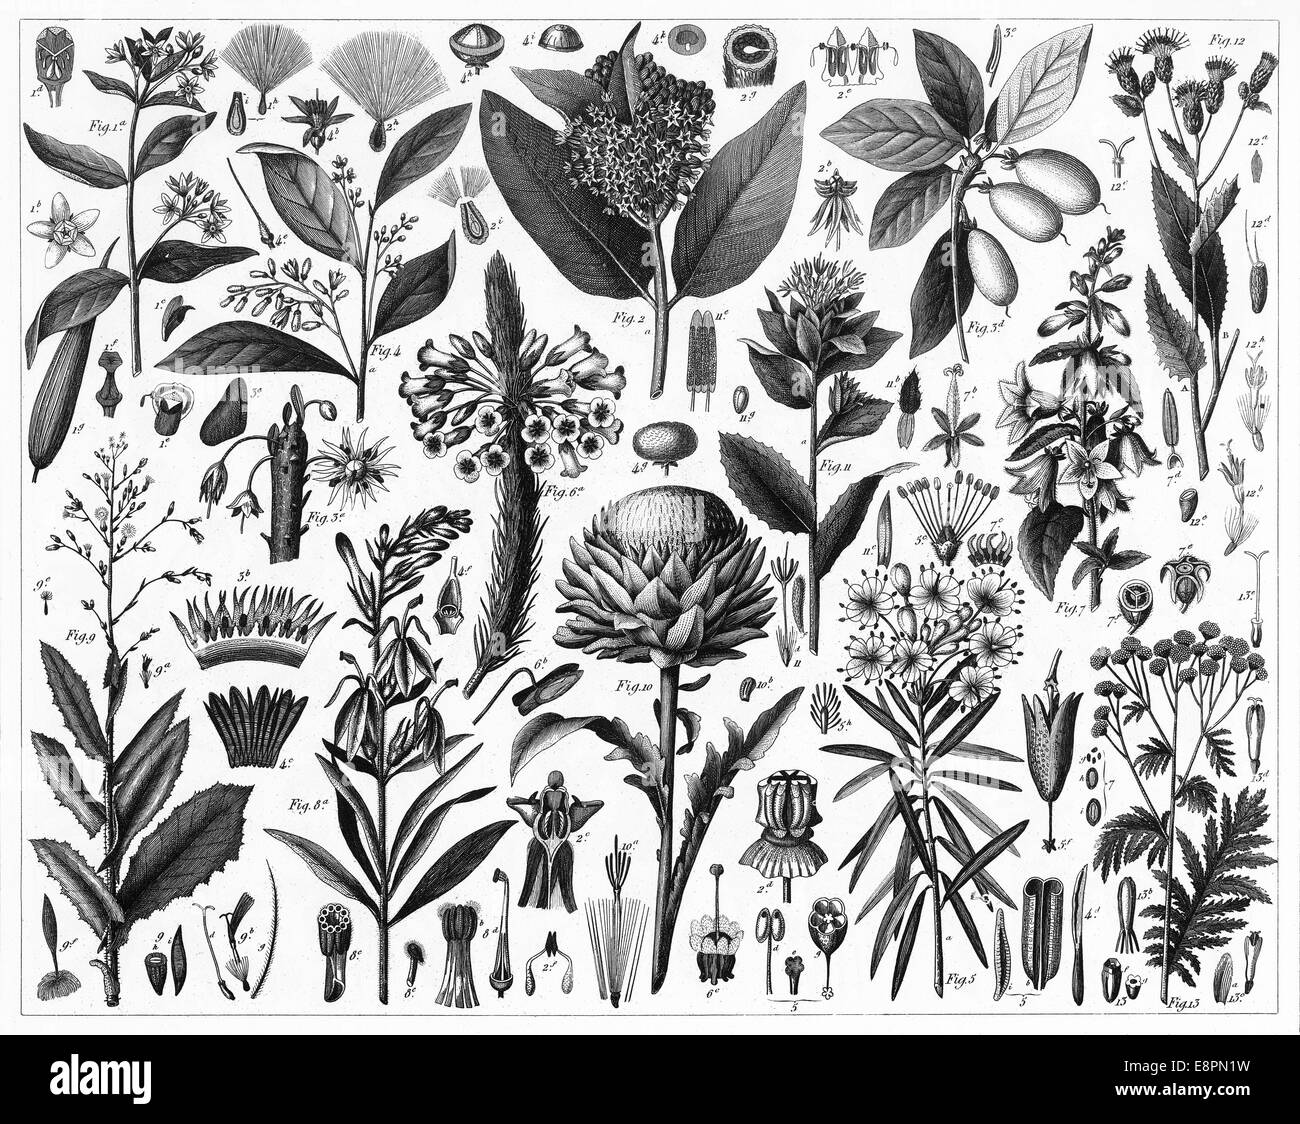 hight resolution of engraved illustrations of cultivated plants from iconographic encyclopedia of science literature and art published in 1851